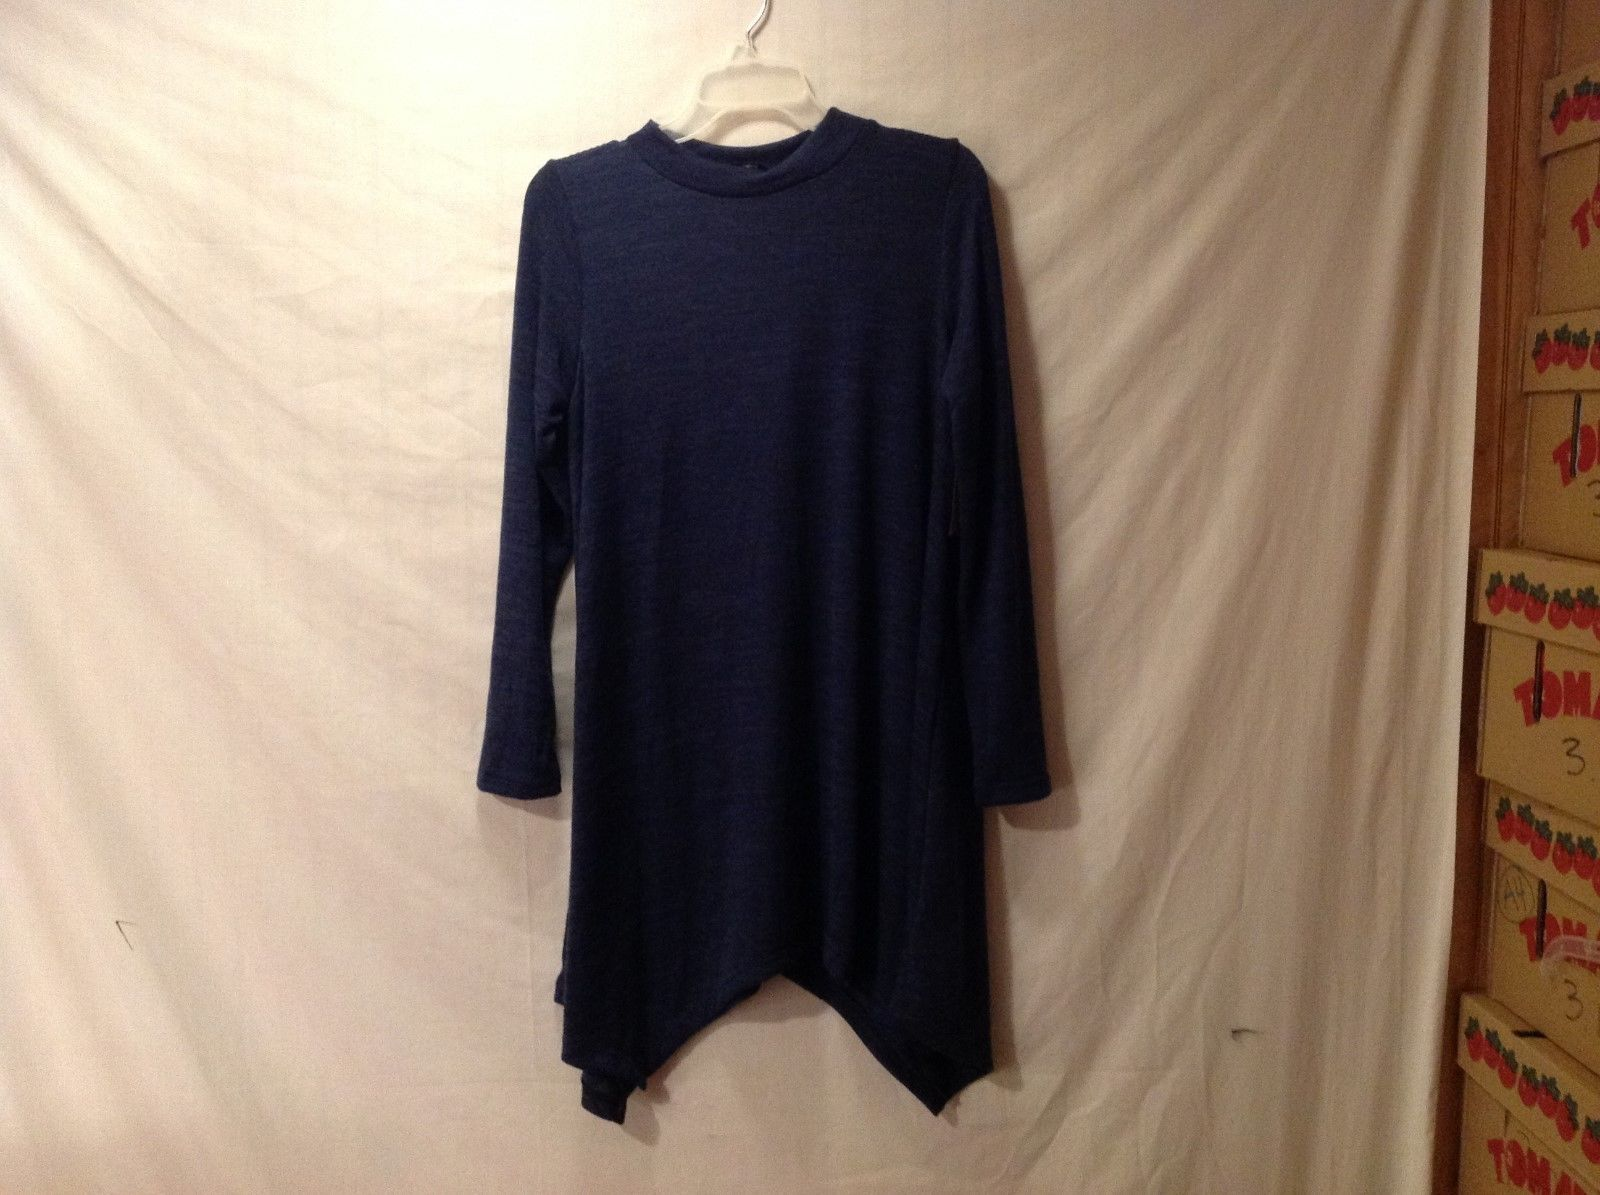 NEW Womens' Accent Bluish-Gray Long Sleeve Top/Shirt Size Medium and X-Large